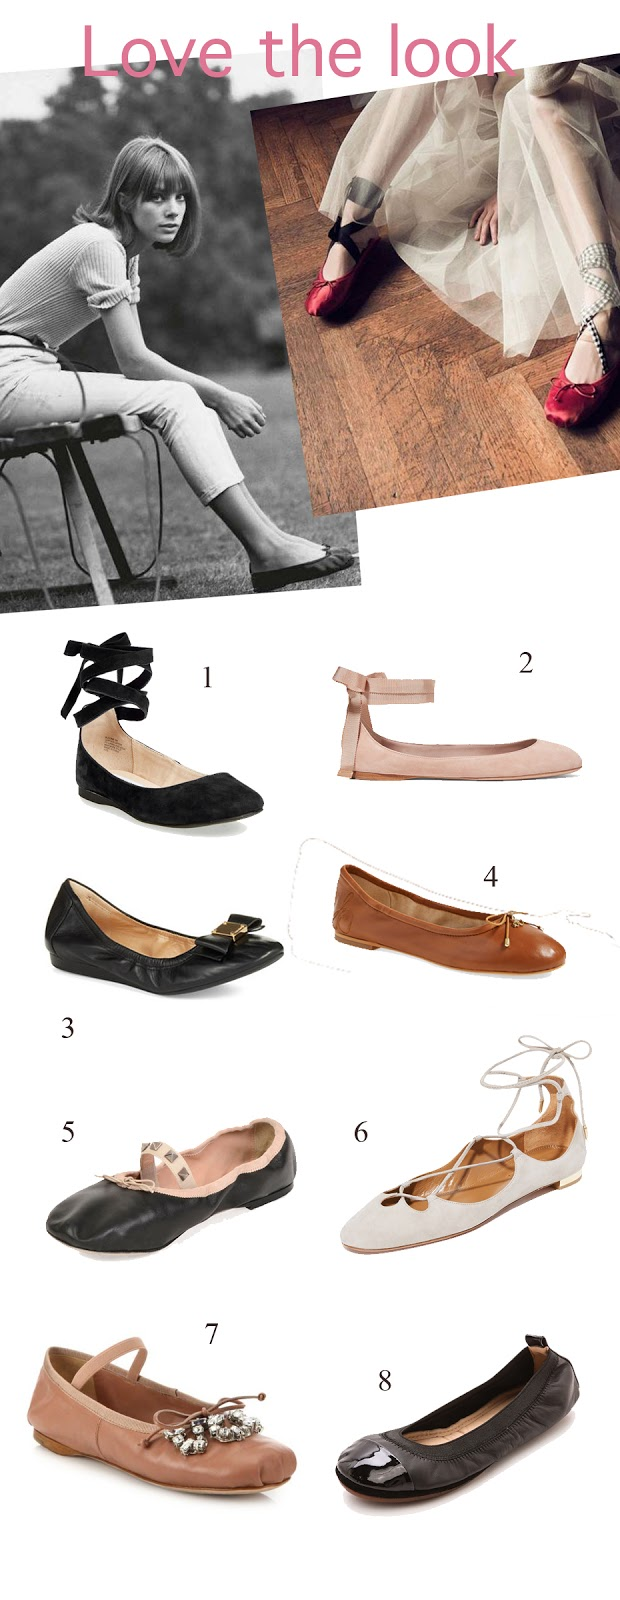 Love the look - the ballet flat